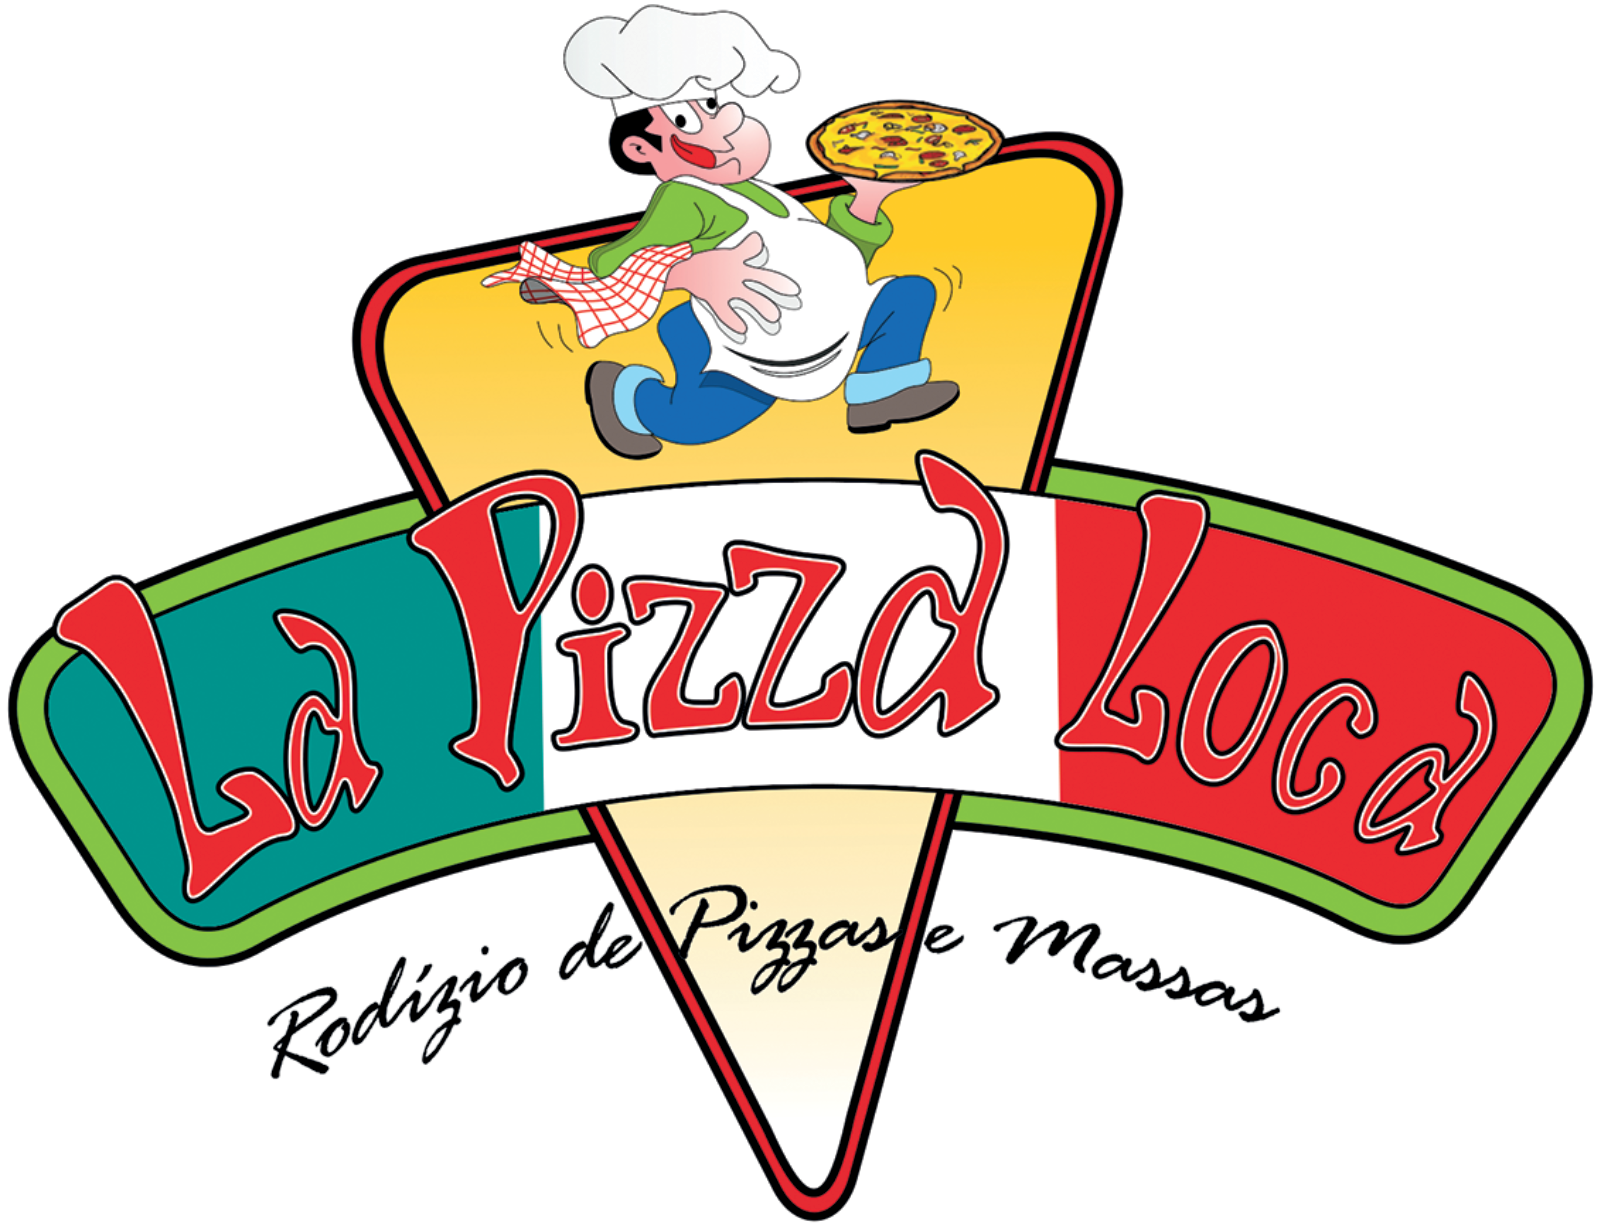 La Pizza Loca